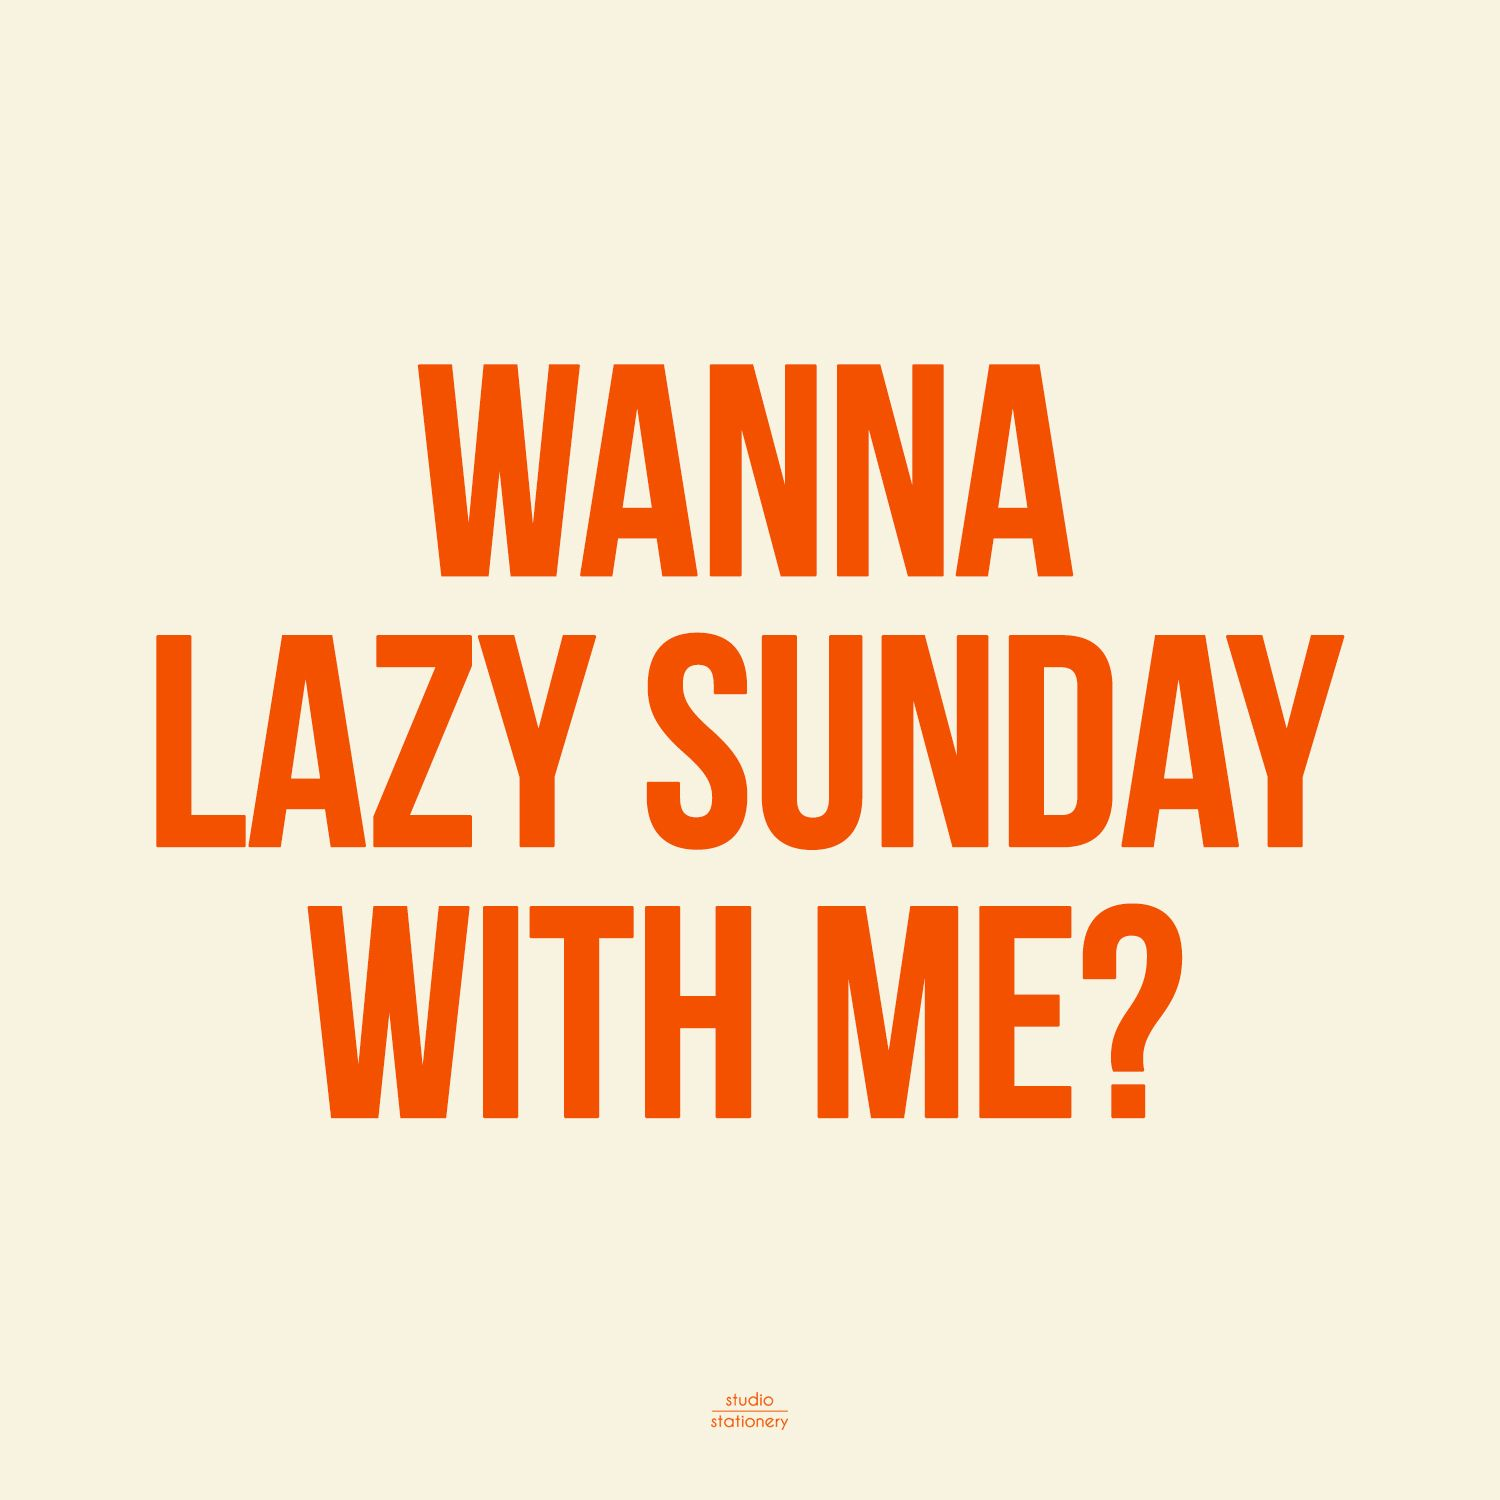 Studio Stationery | Fun | Quote | Design | Sunday | Lazy Sunday | Chill |